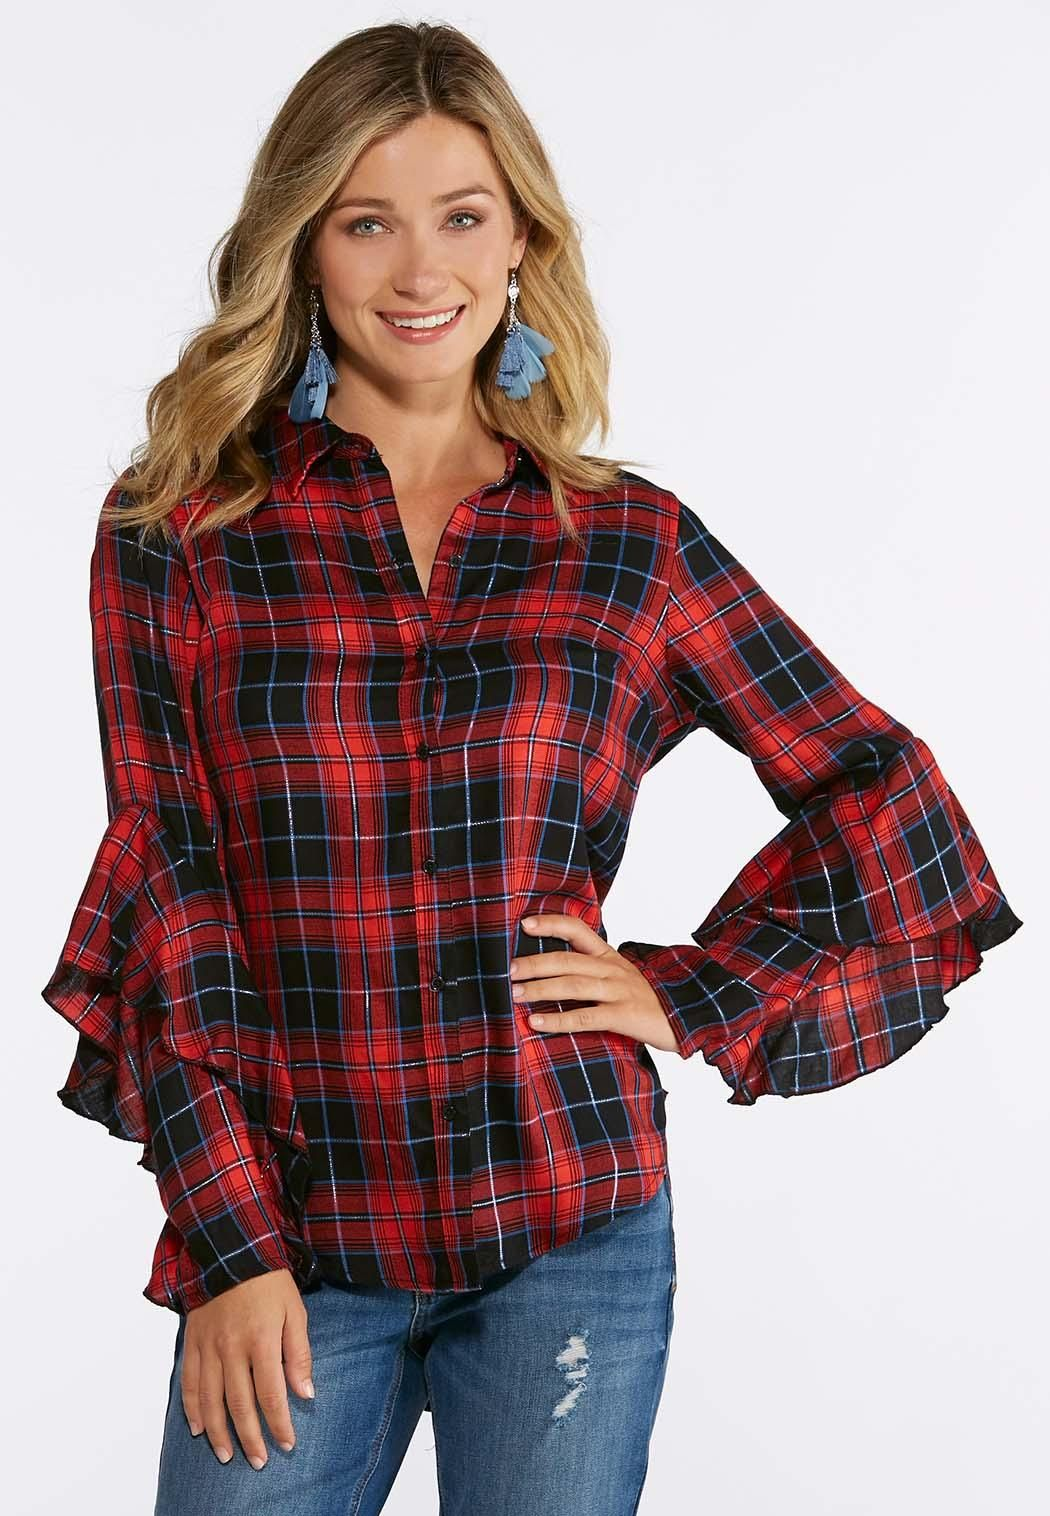 e4459bc837089 Plus Size Ruffled Plaid Shirt Give your girl-next-door style a little  feminine flair with this lightweight woven top